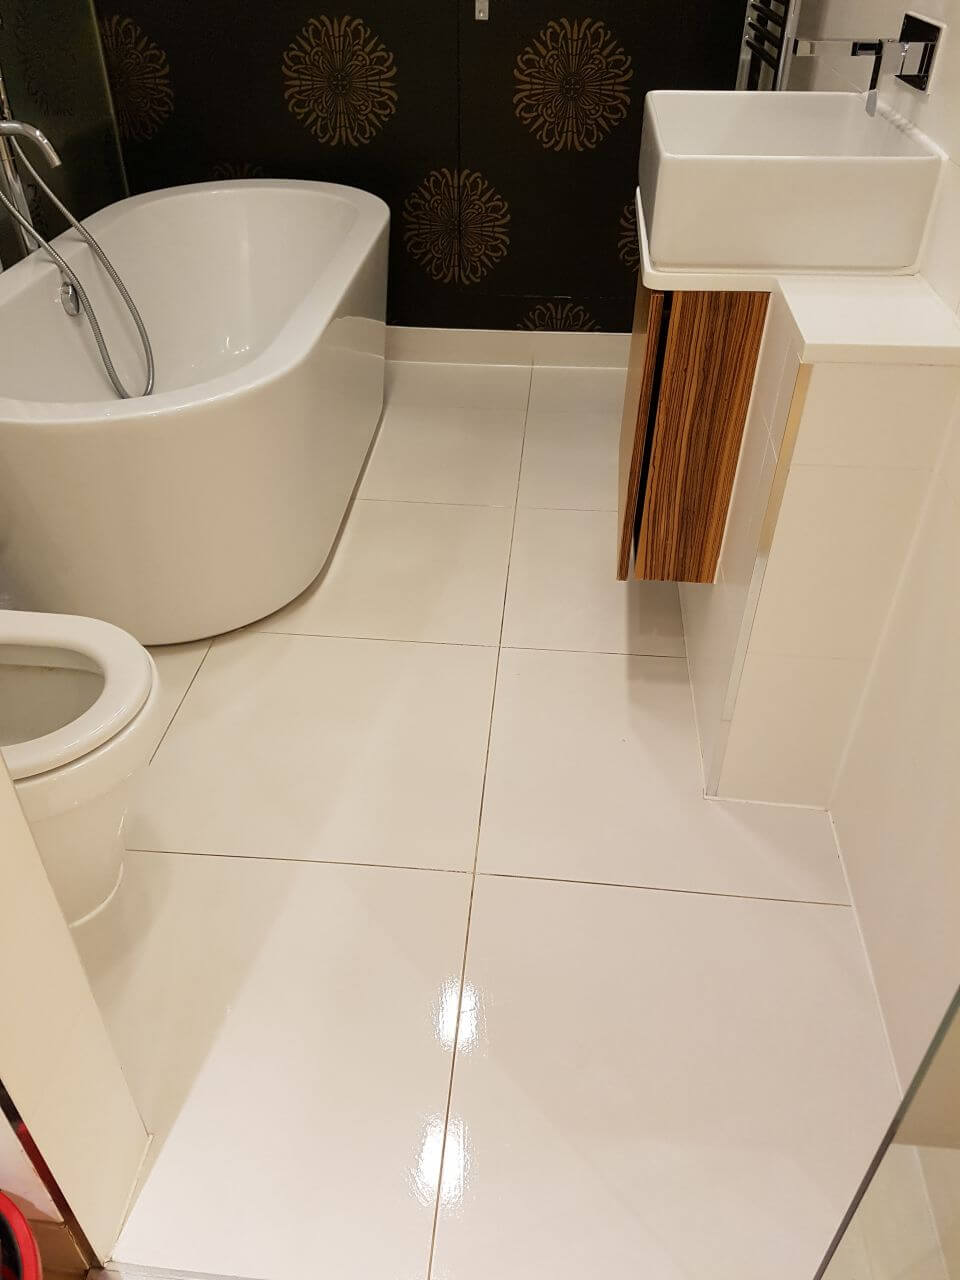 cleaning services Harrow Weald